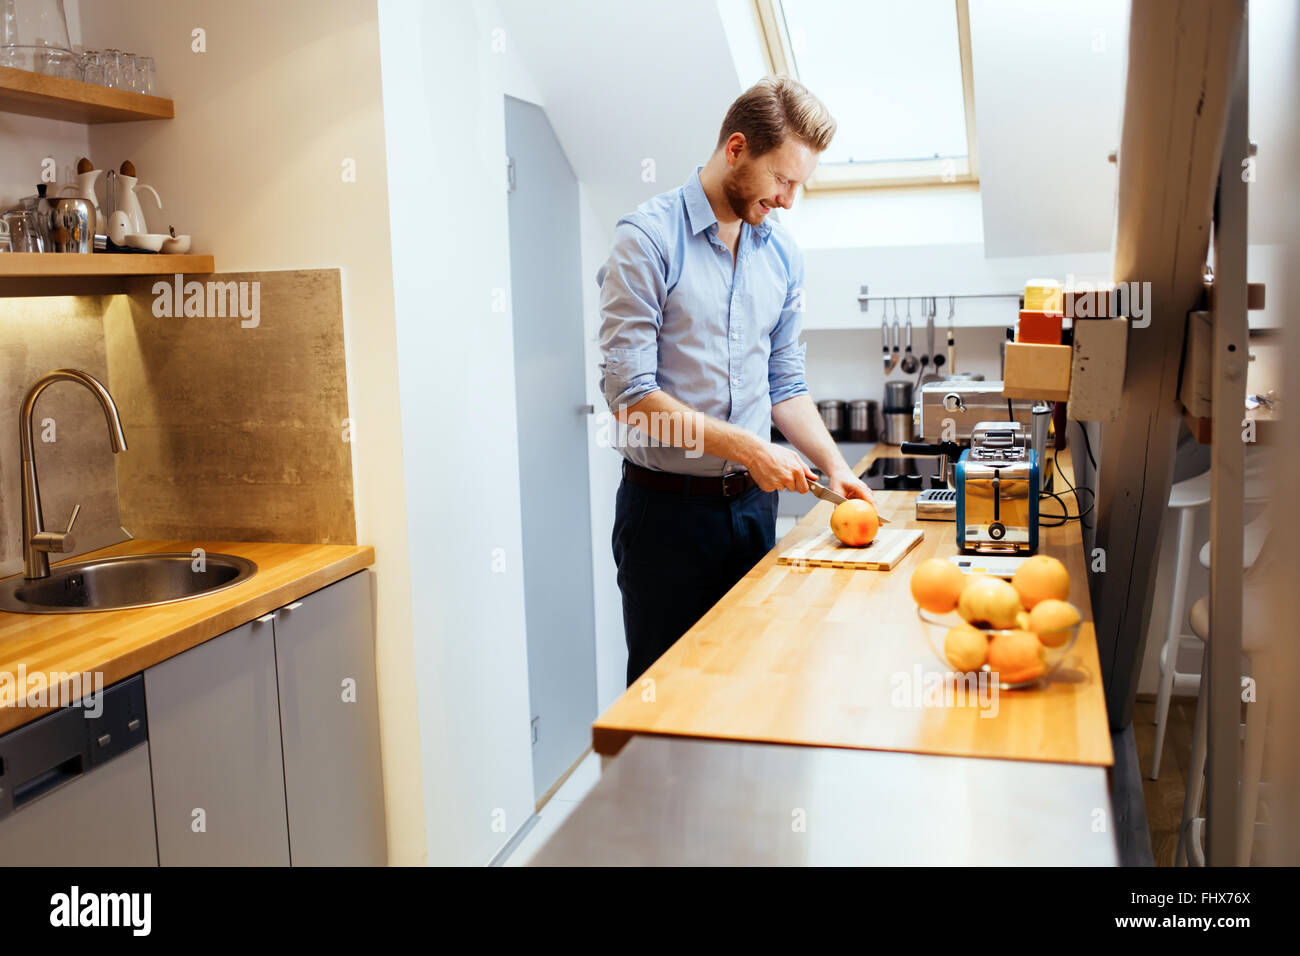 Man slicing oranges in kitchen with knife - Stock Image